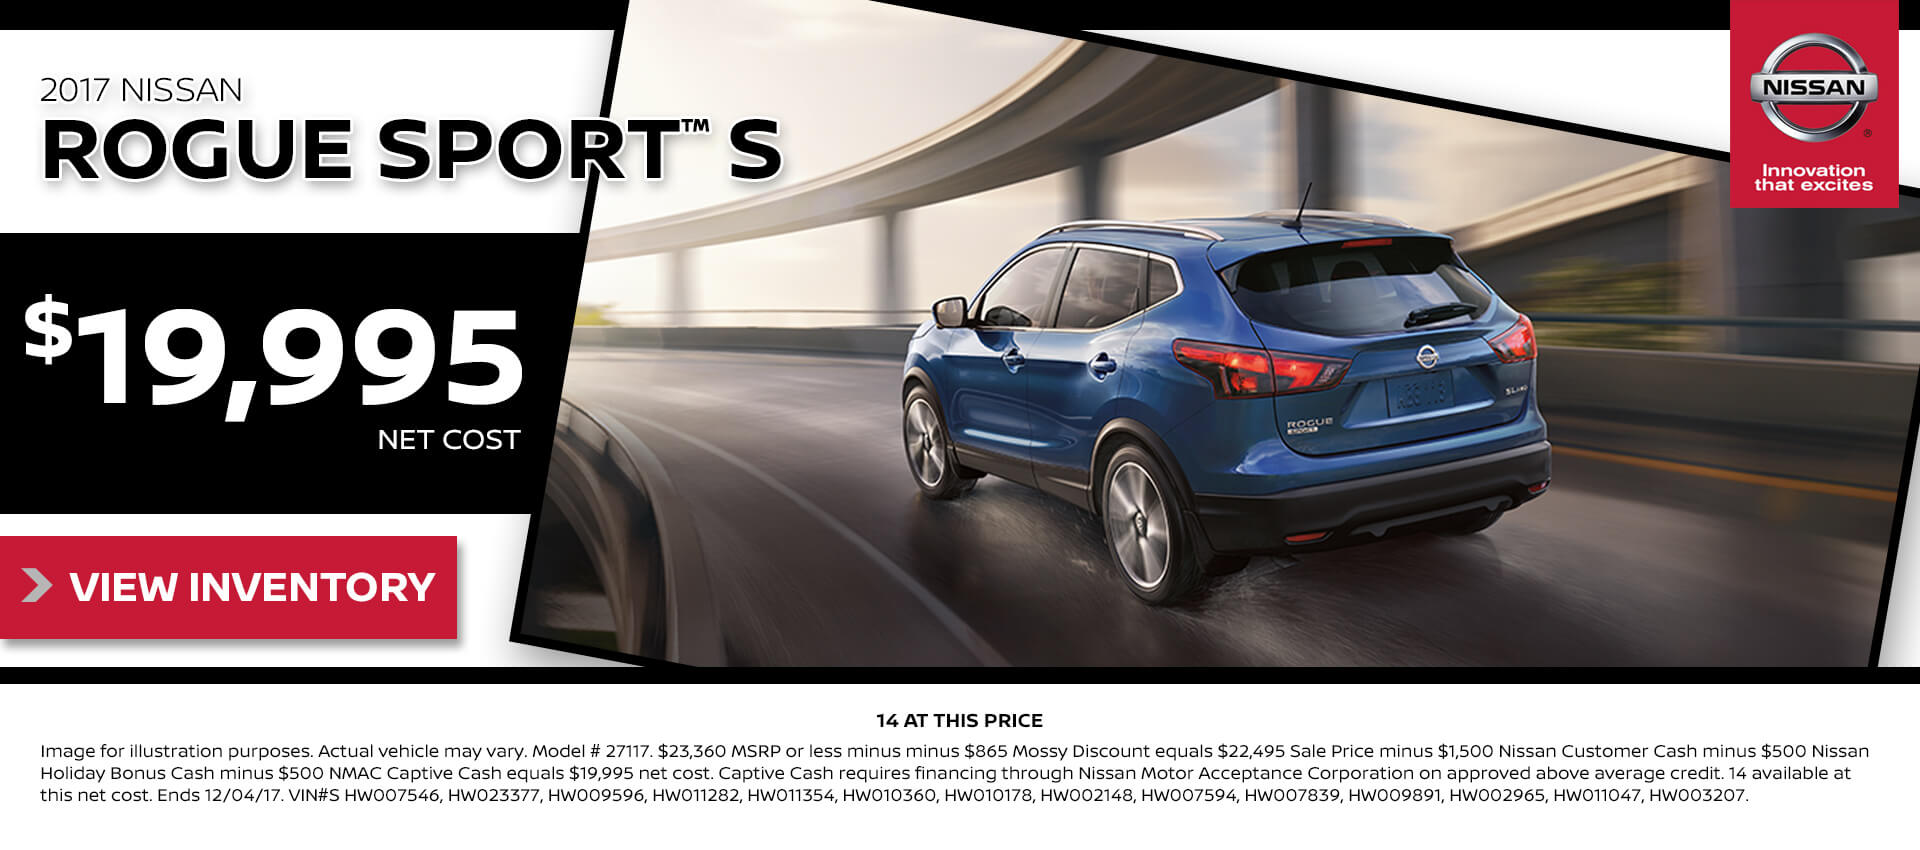 Mossy Nissan Escondido >> New 2016-2017 Nissan & Used Car Dealer in San Diego, CA | Mossy Nissan 7 Locations